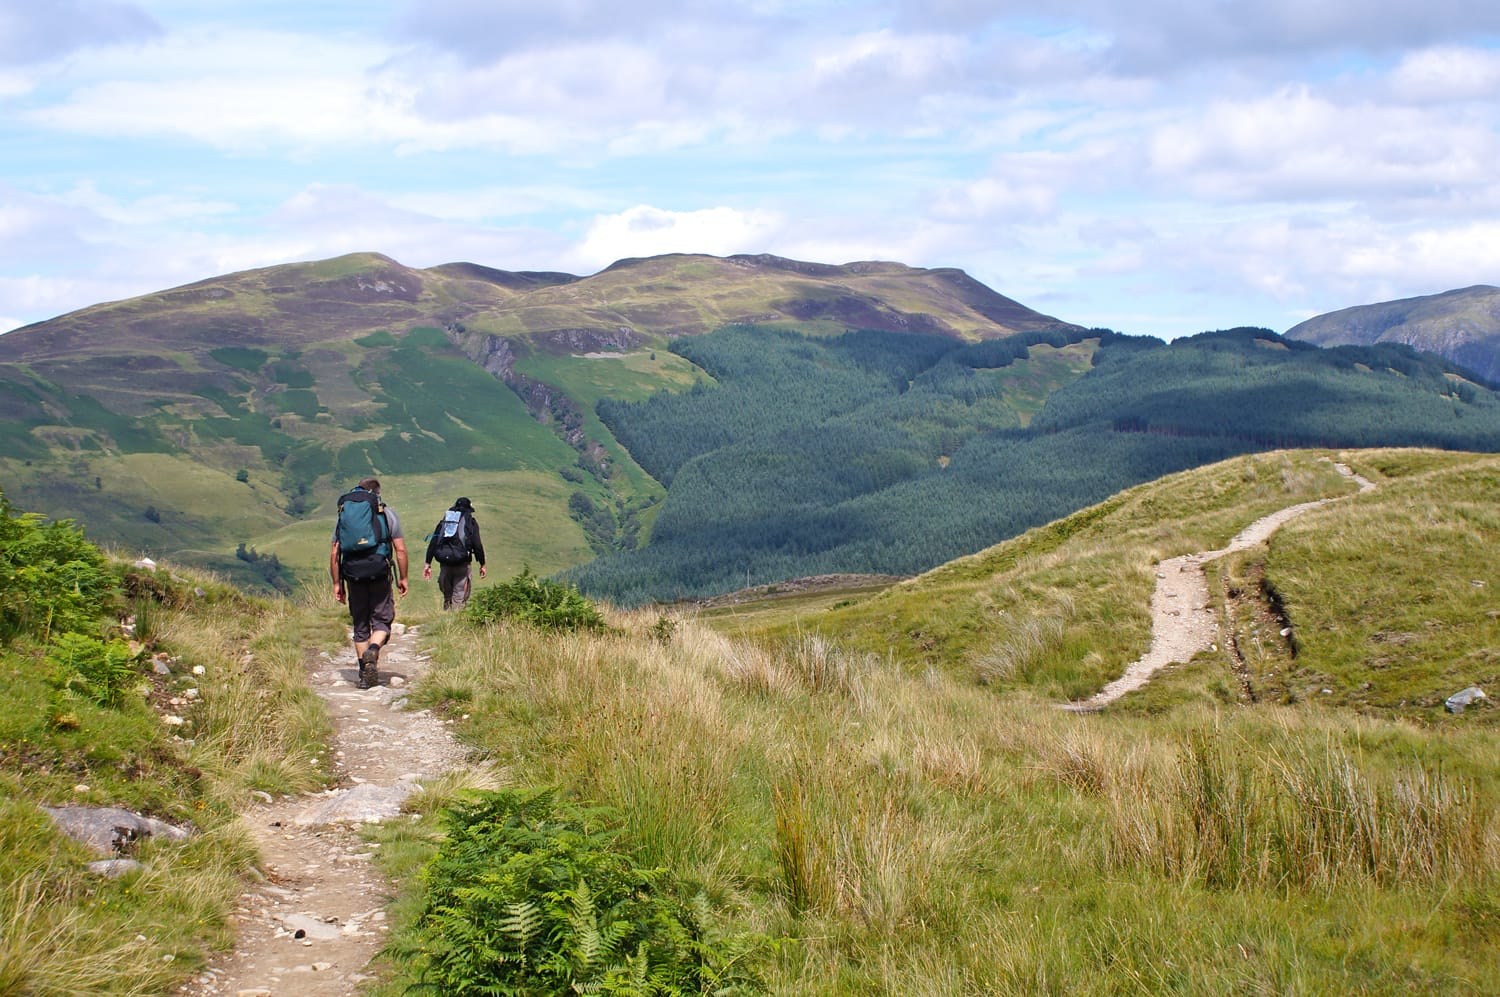 Hikers at The West Highland Way in Scotland, UK